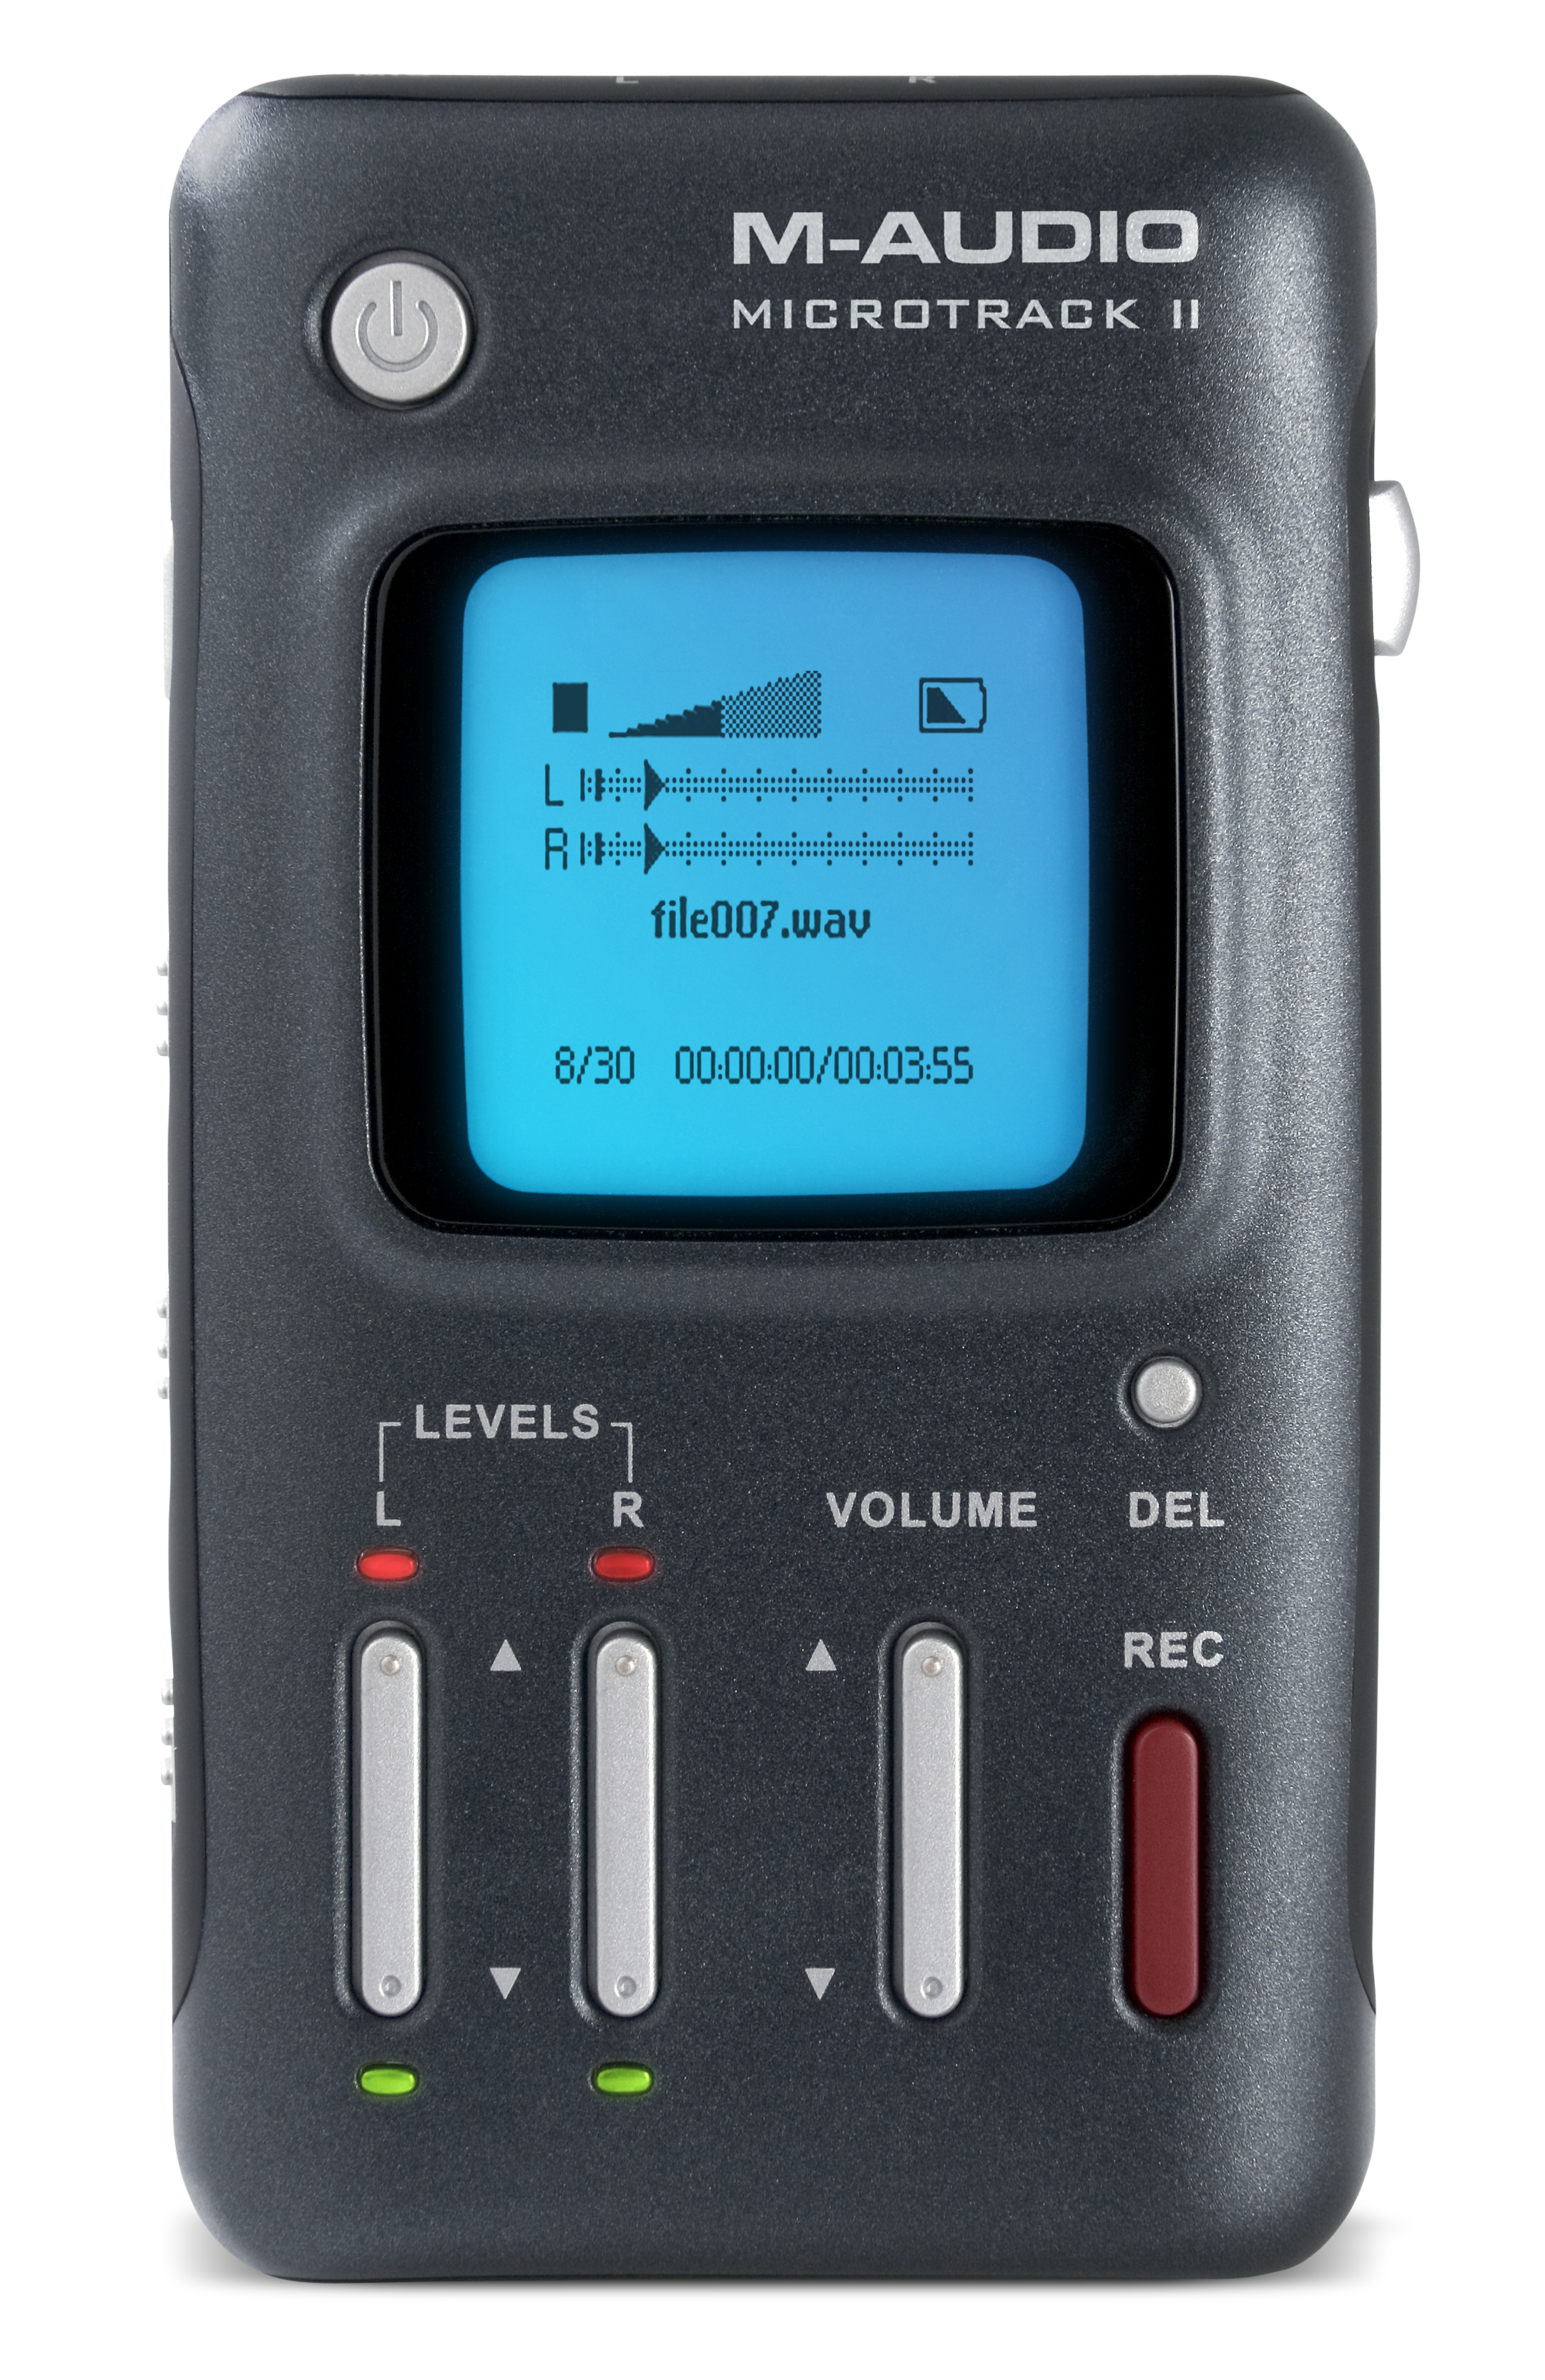 Image of M-Audio Microtrack II digital recorder available for checkout.